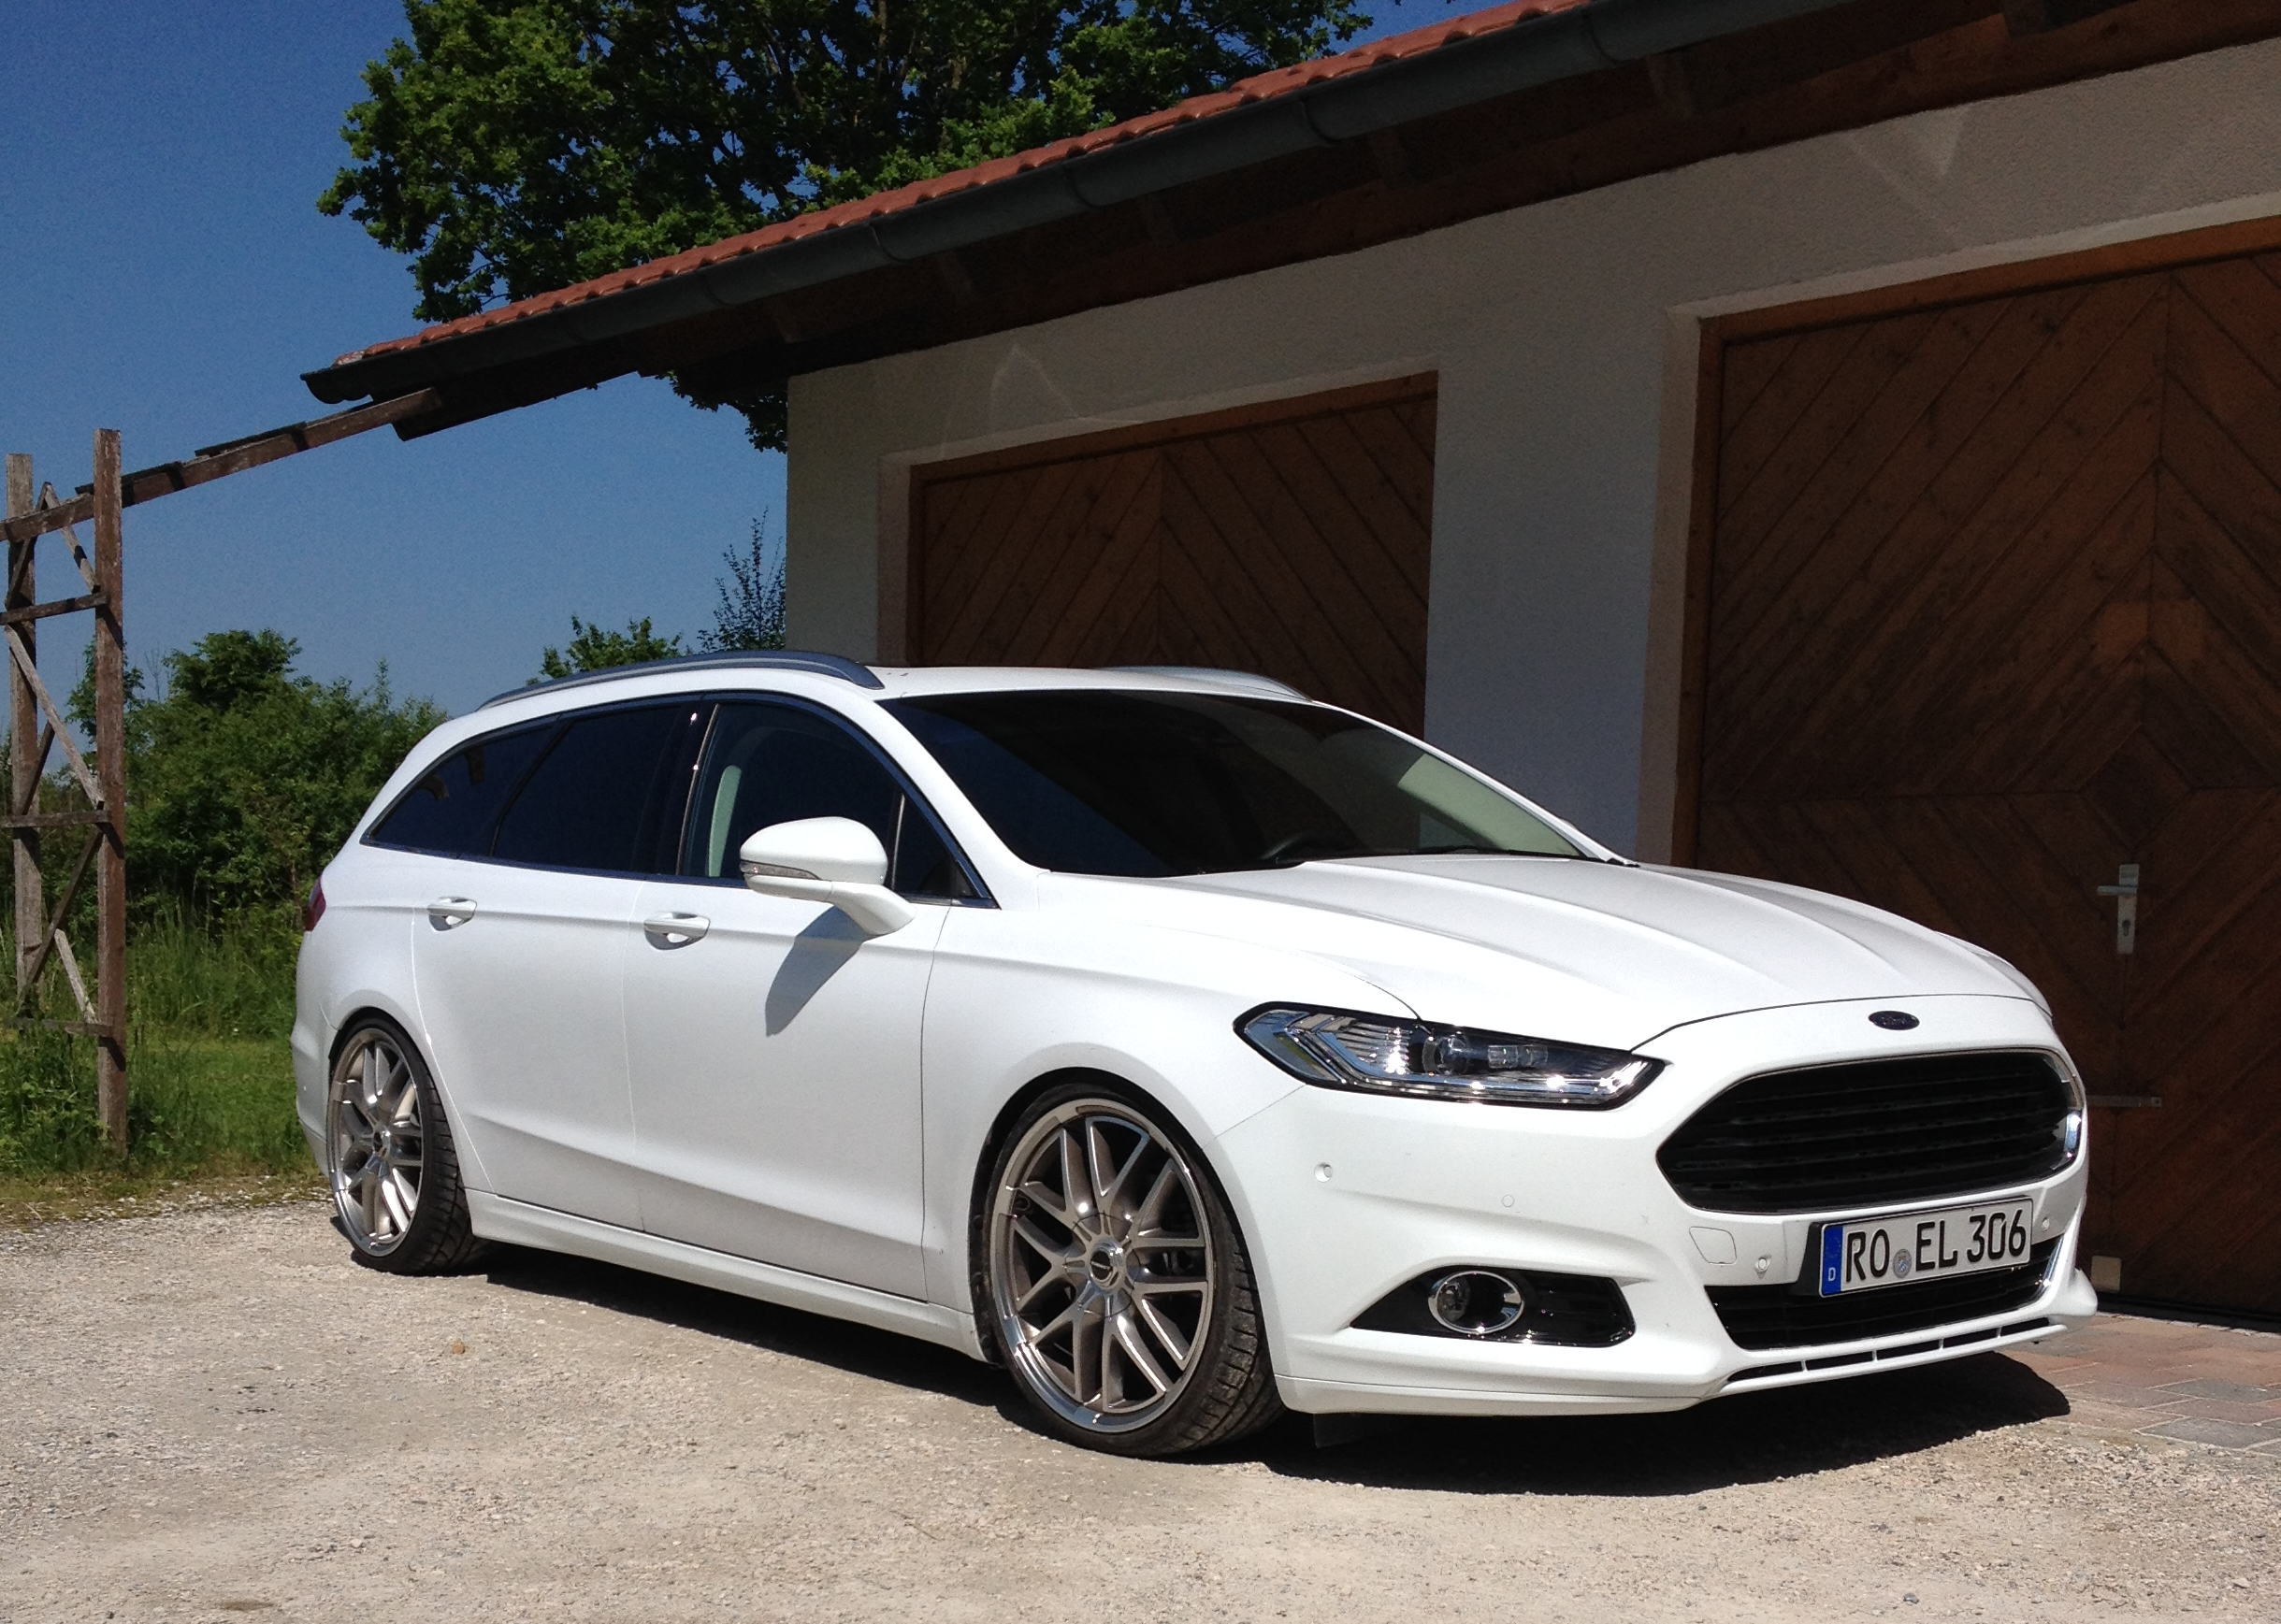 auto ford mondeo r turnier 2015 20 zoll tuning. Black Bedroom Furniture Sets. Home Design Ideas